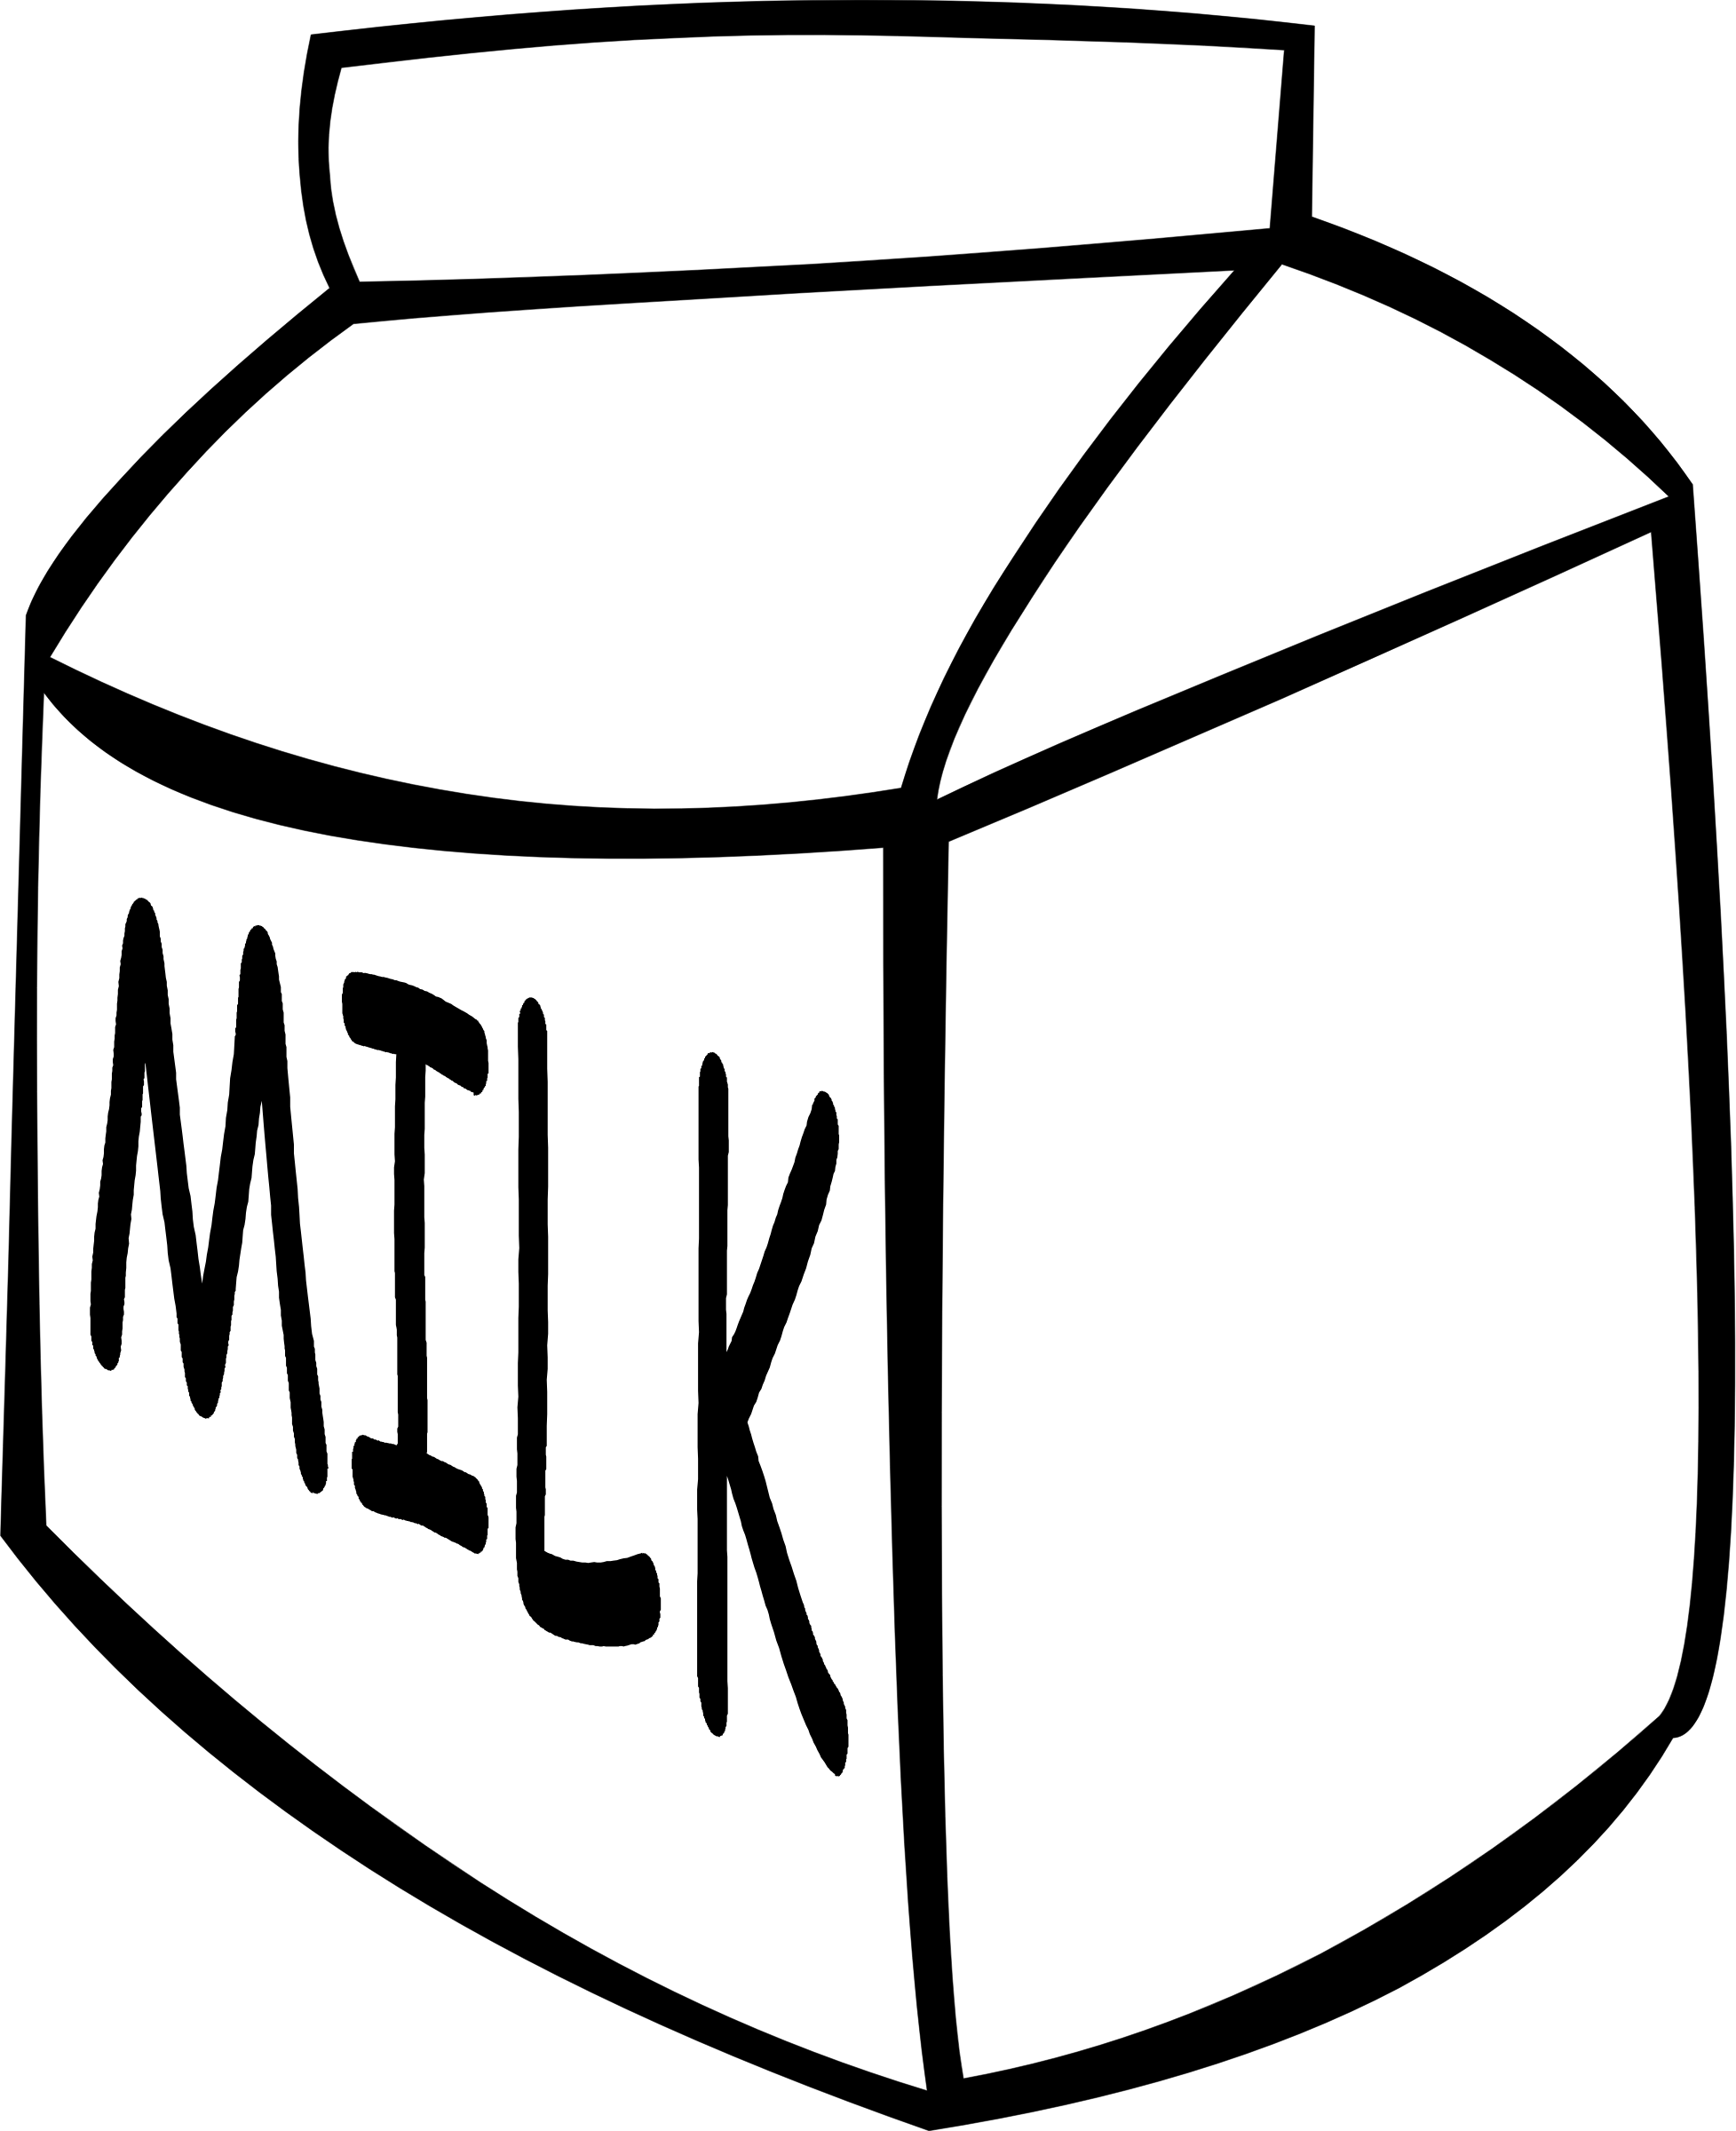 Dairy clipart black and white, Dairy black and white.